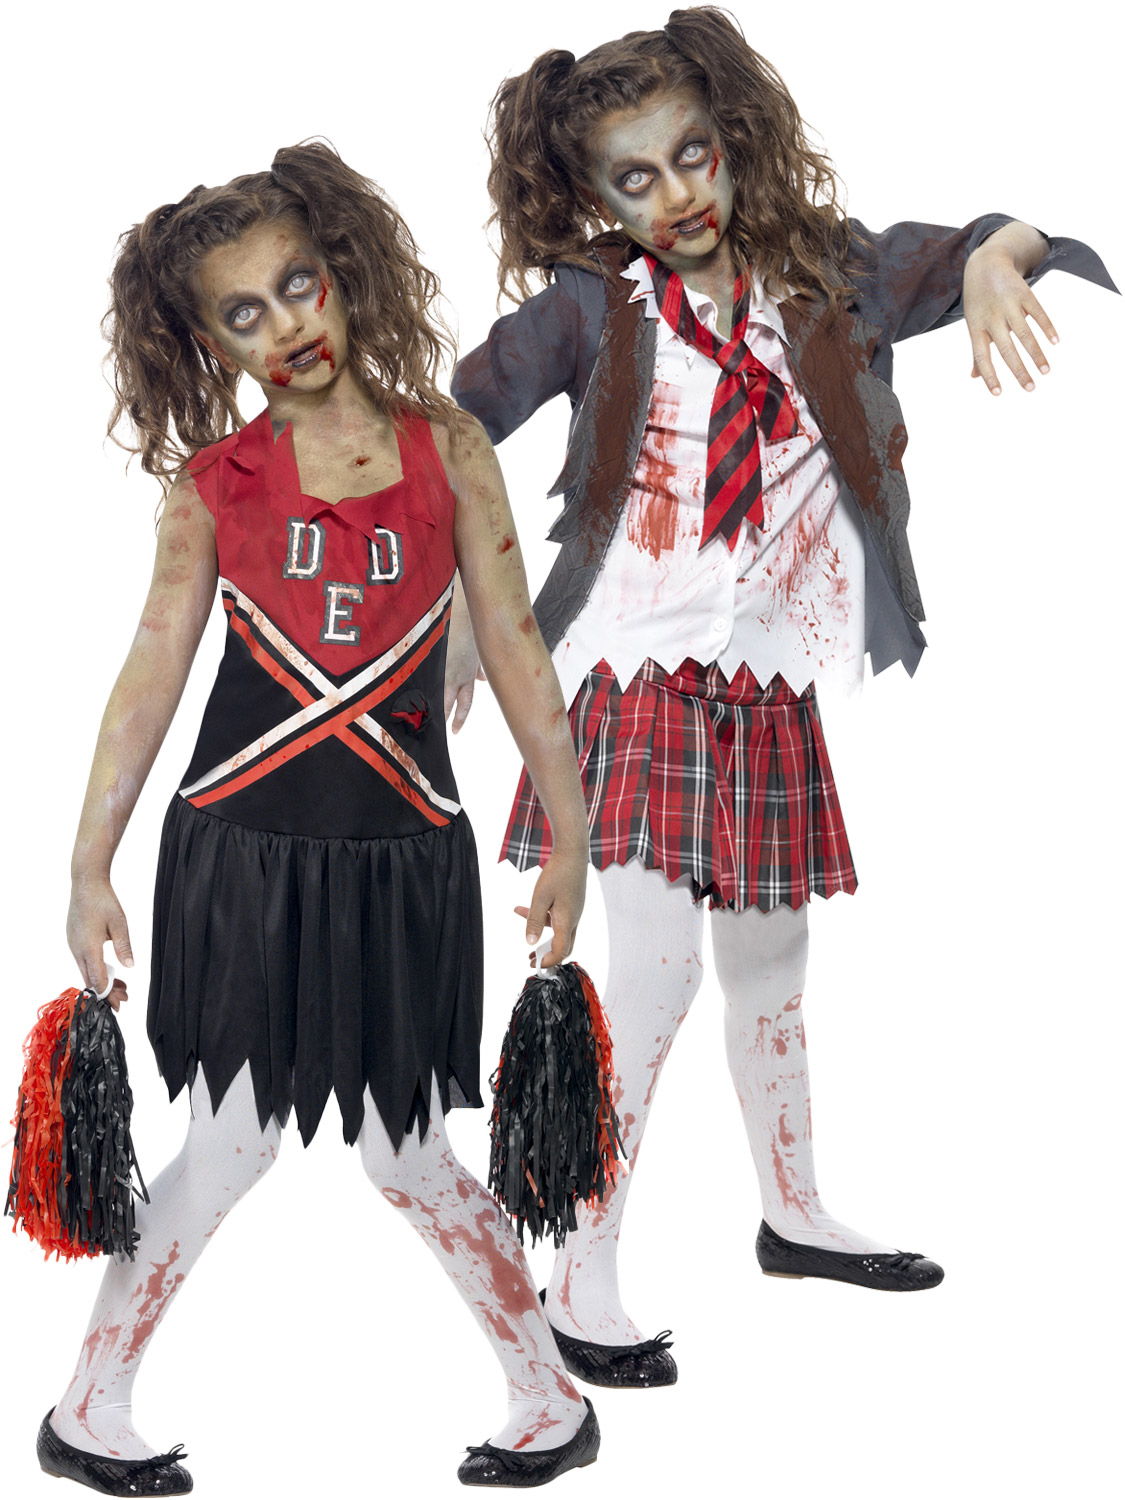 Halloween Zombie Costumes For Girls.Details About Girls Zombie Cheerleader School Girl Costume Halloween Fancy Dress Party Kids